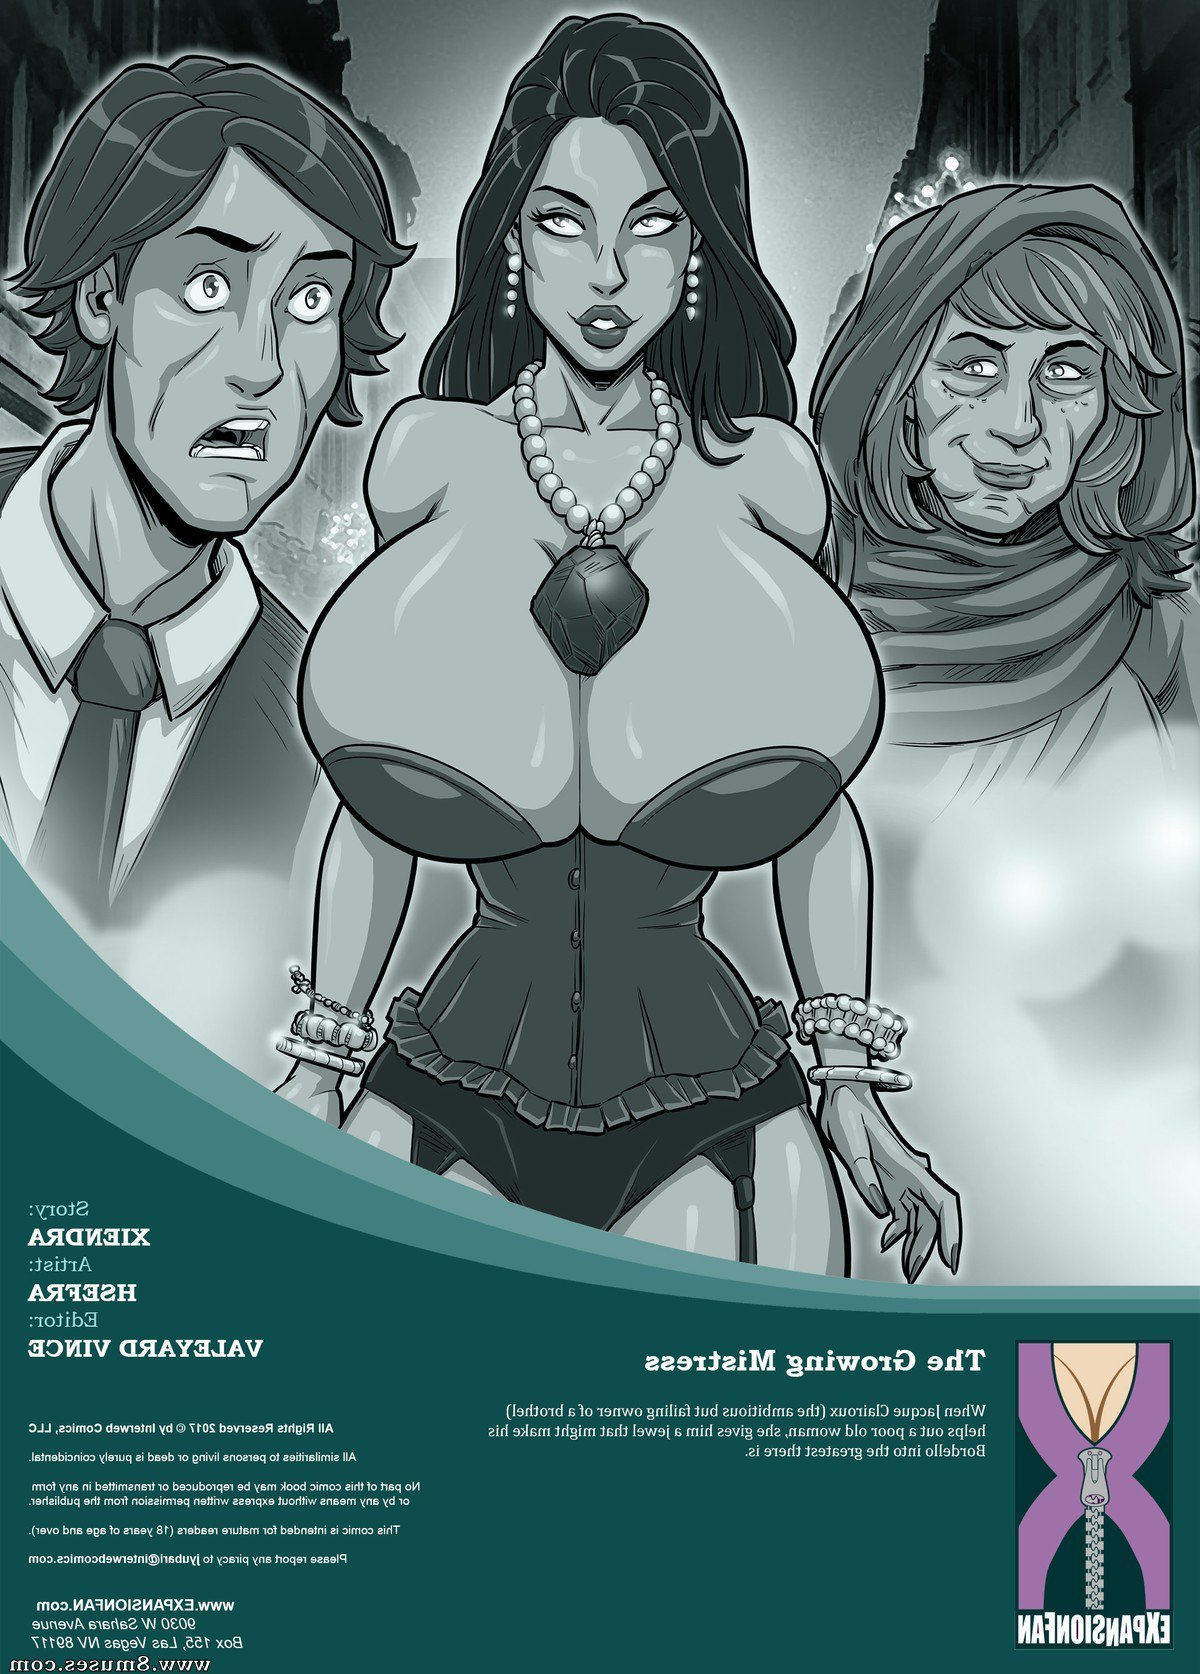 Expansionfan-Comics/The-Growing-Mistress/Issue-1 The_Growing_Mistress_-_Issue_1_2.jpg